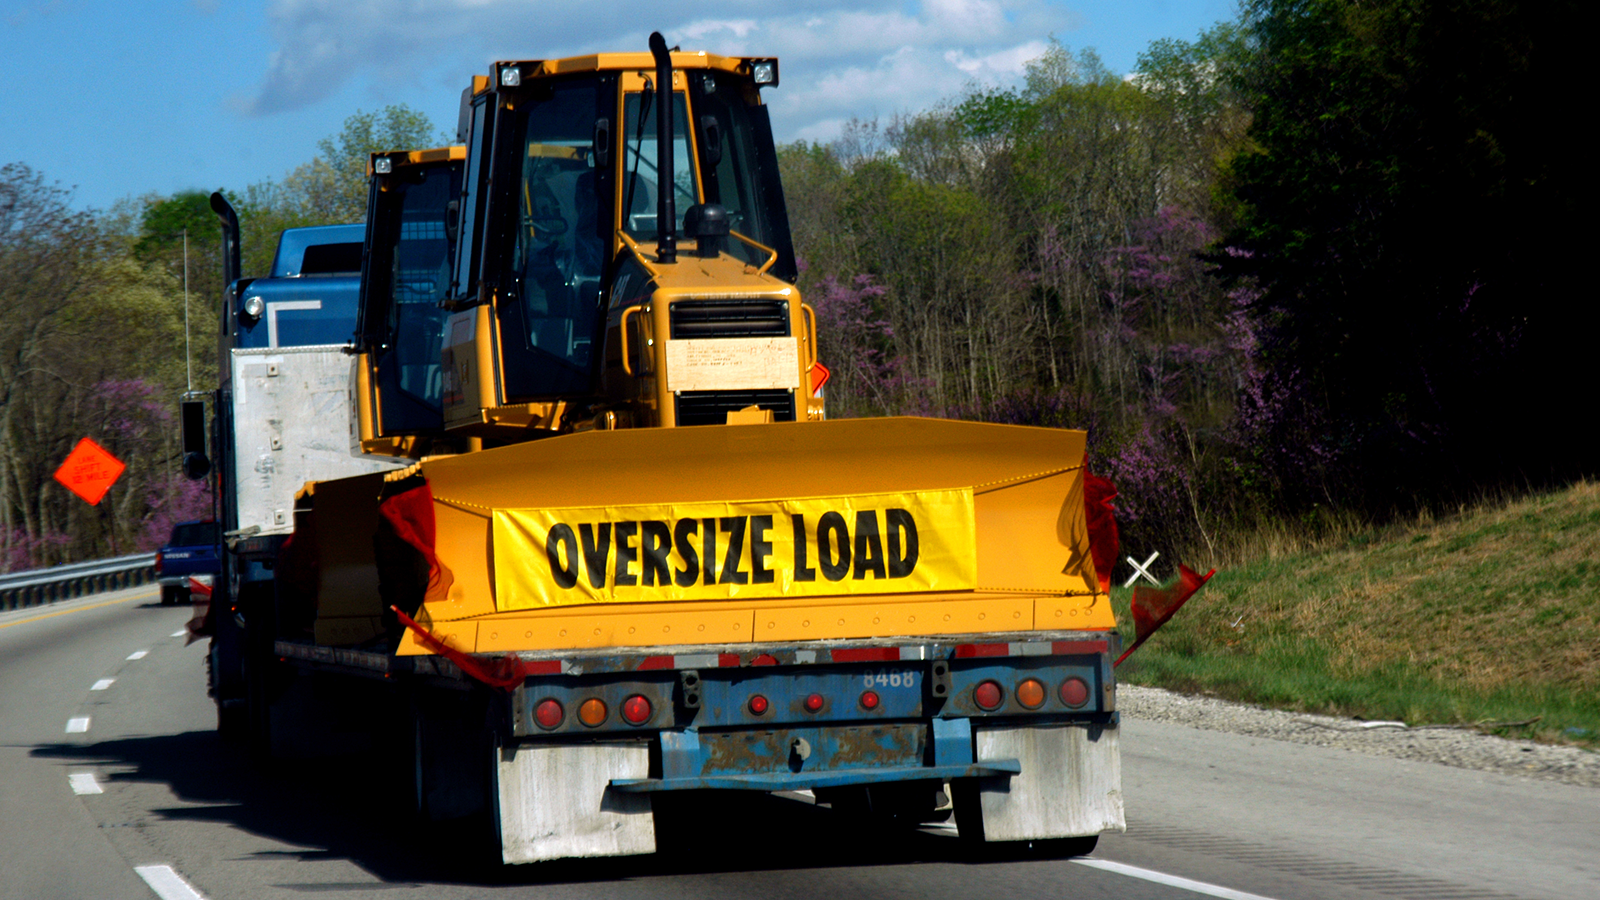 Hauling an oversize load